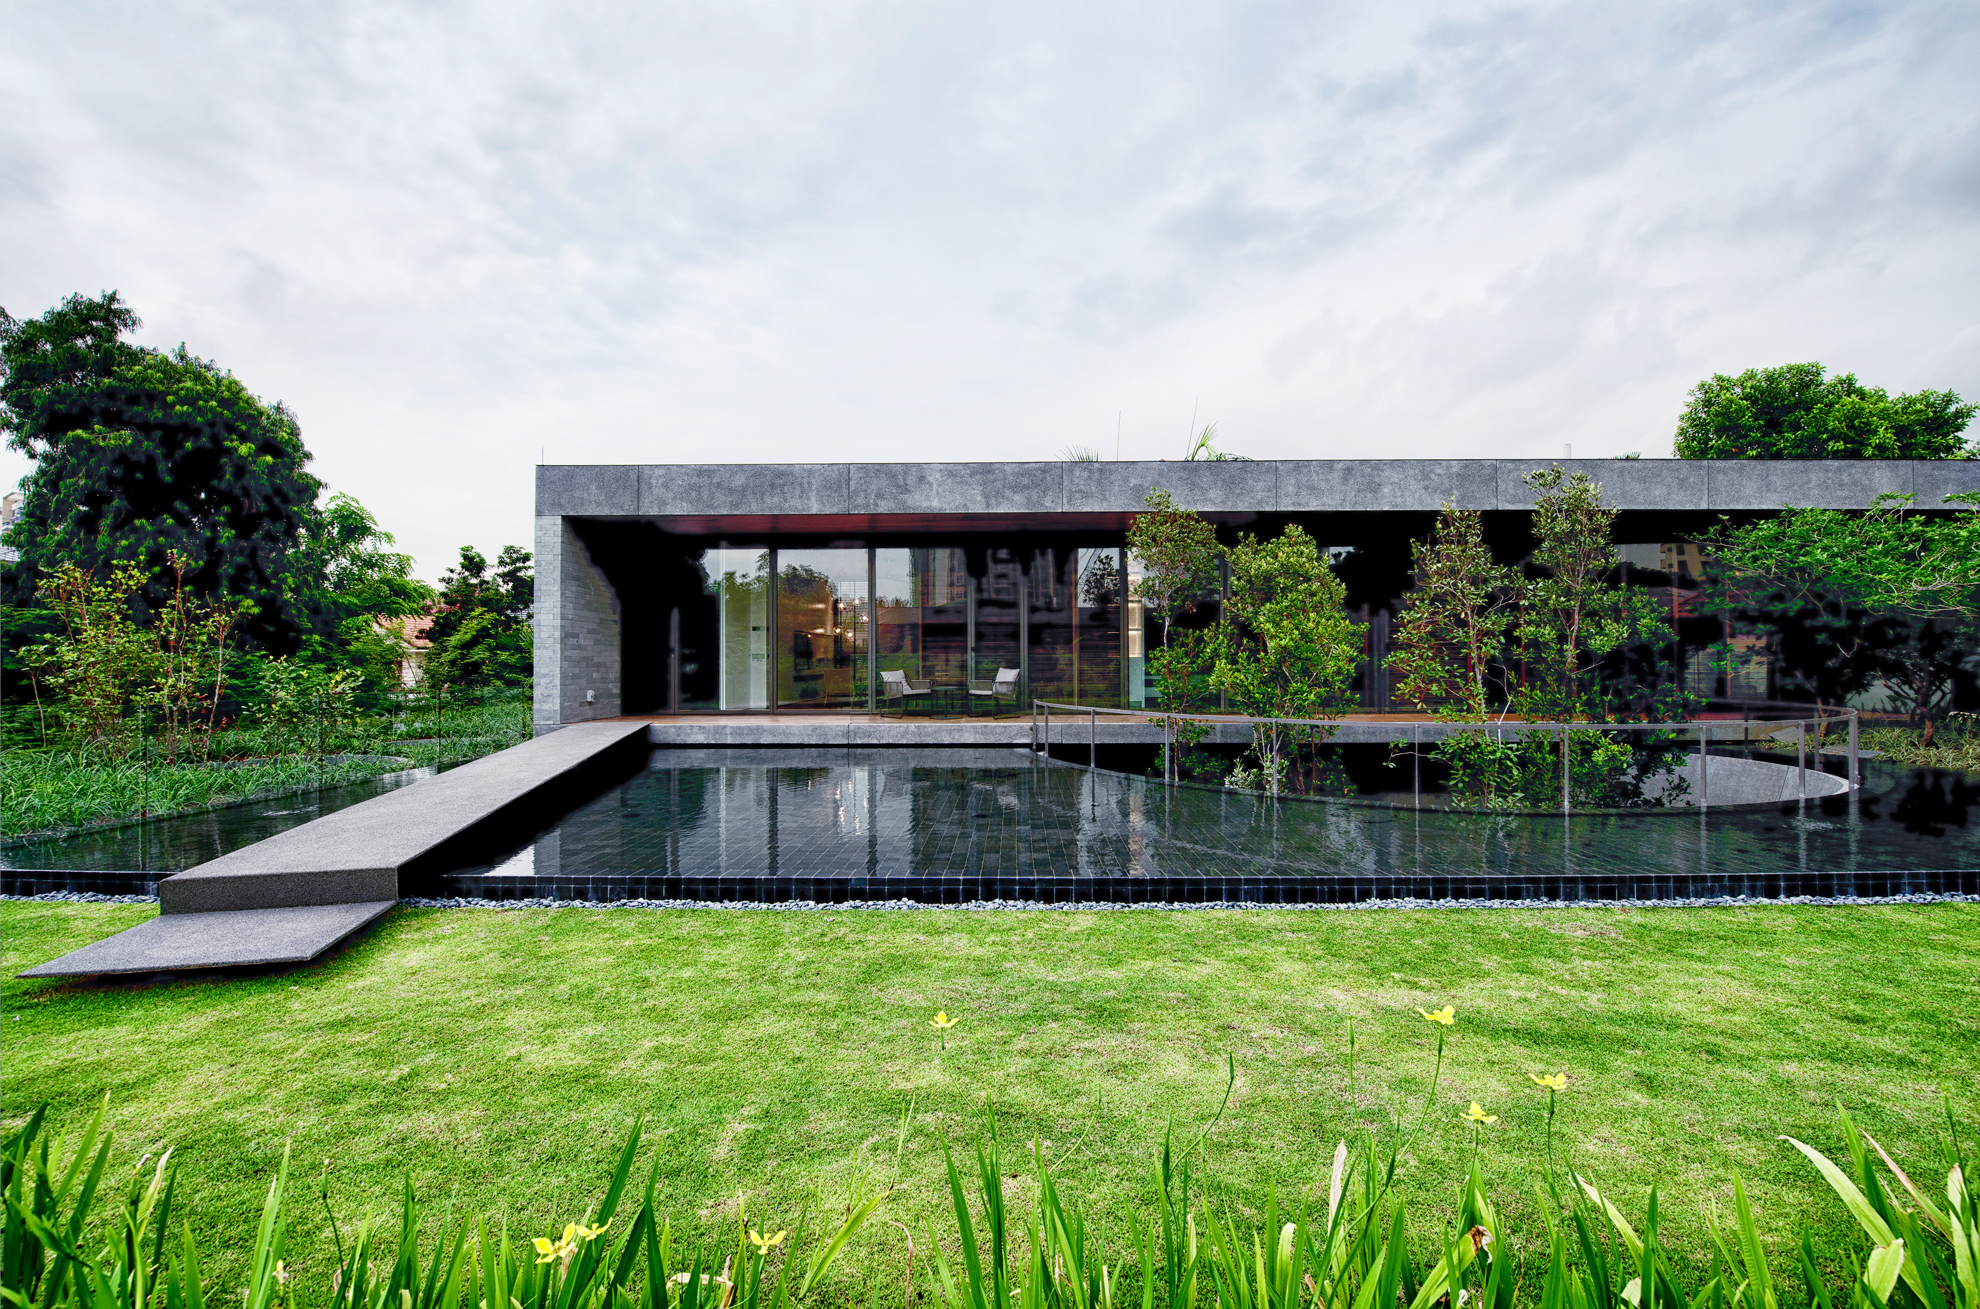 FARM_THE_WALL_HOUSE_11.jpg